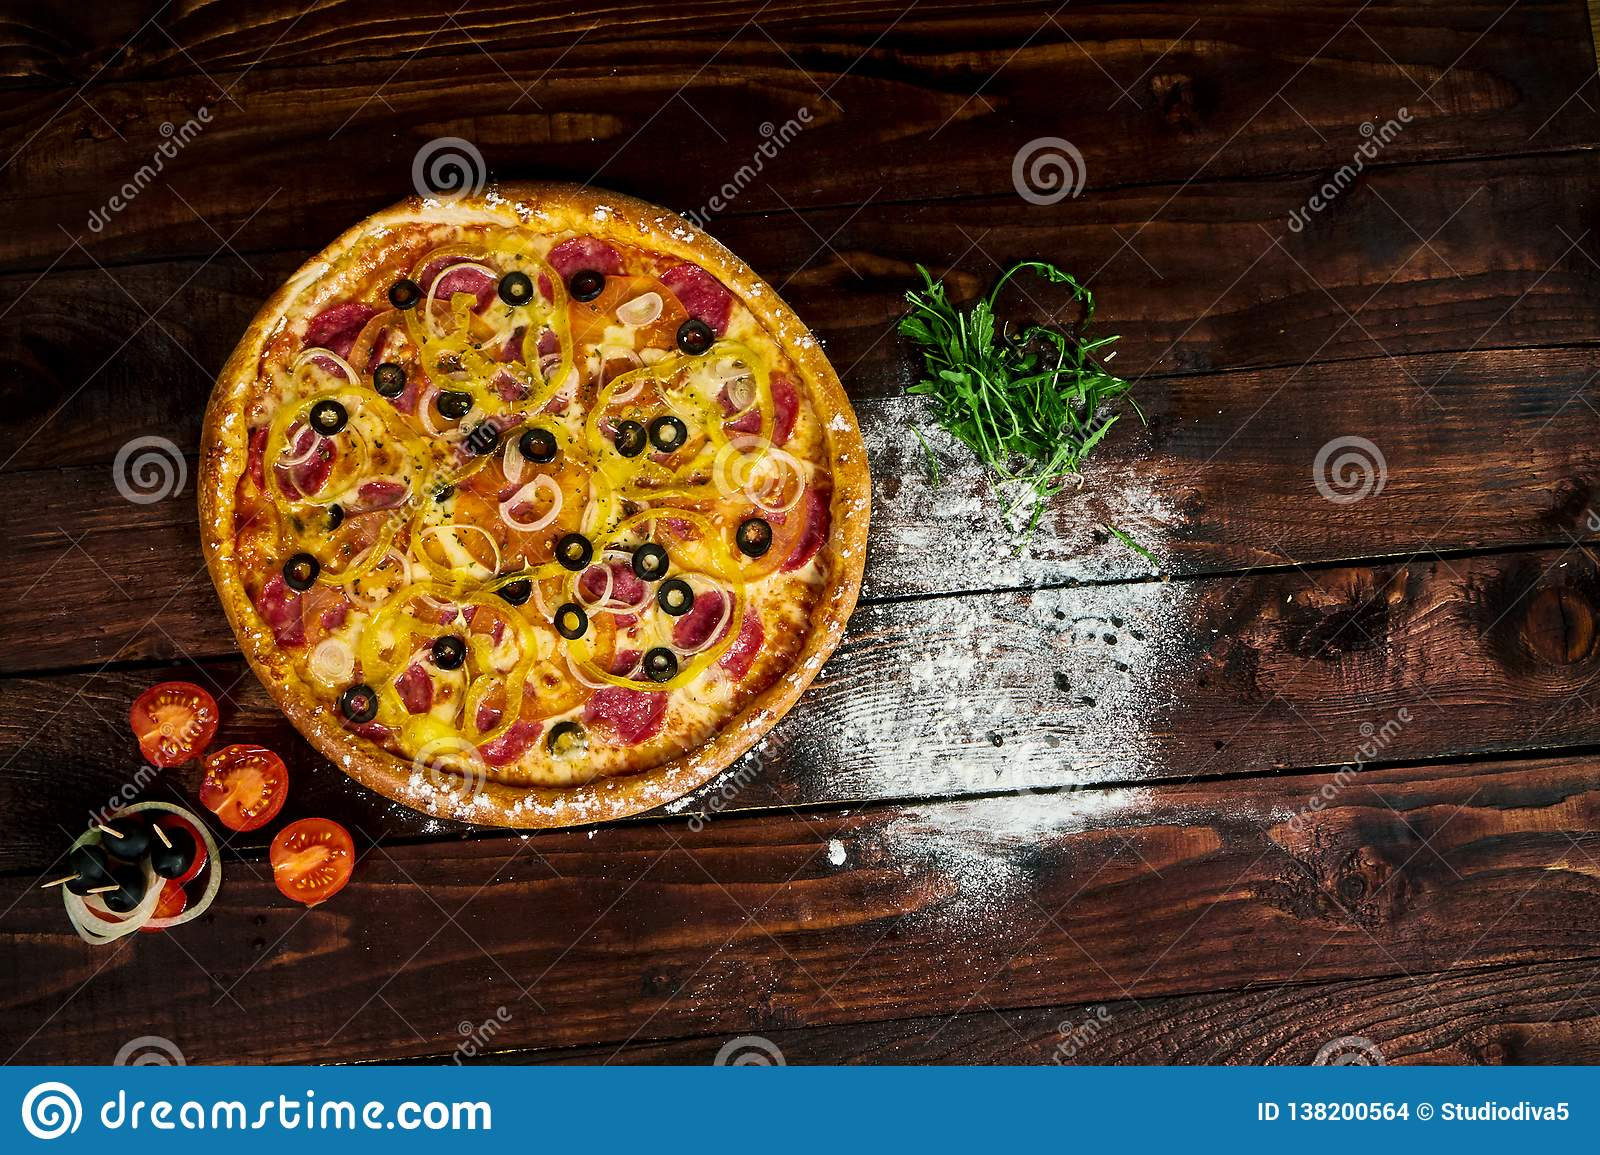 Wooden kitchen table with pizza sprinkled with flour